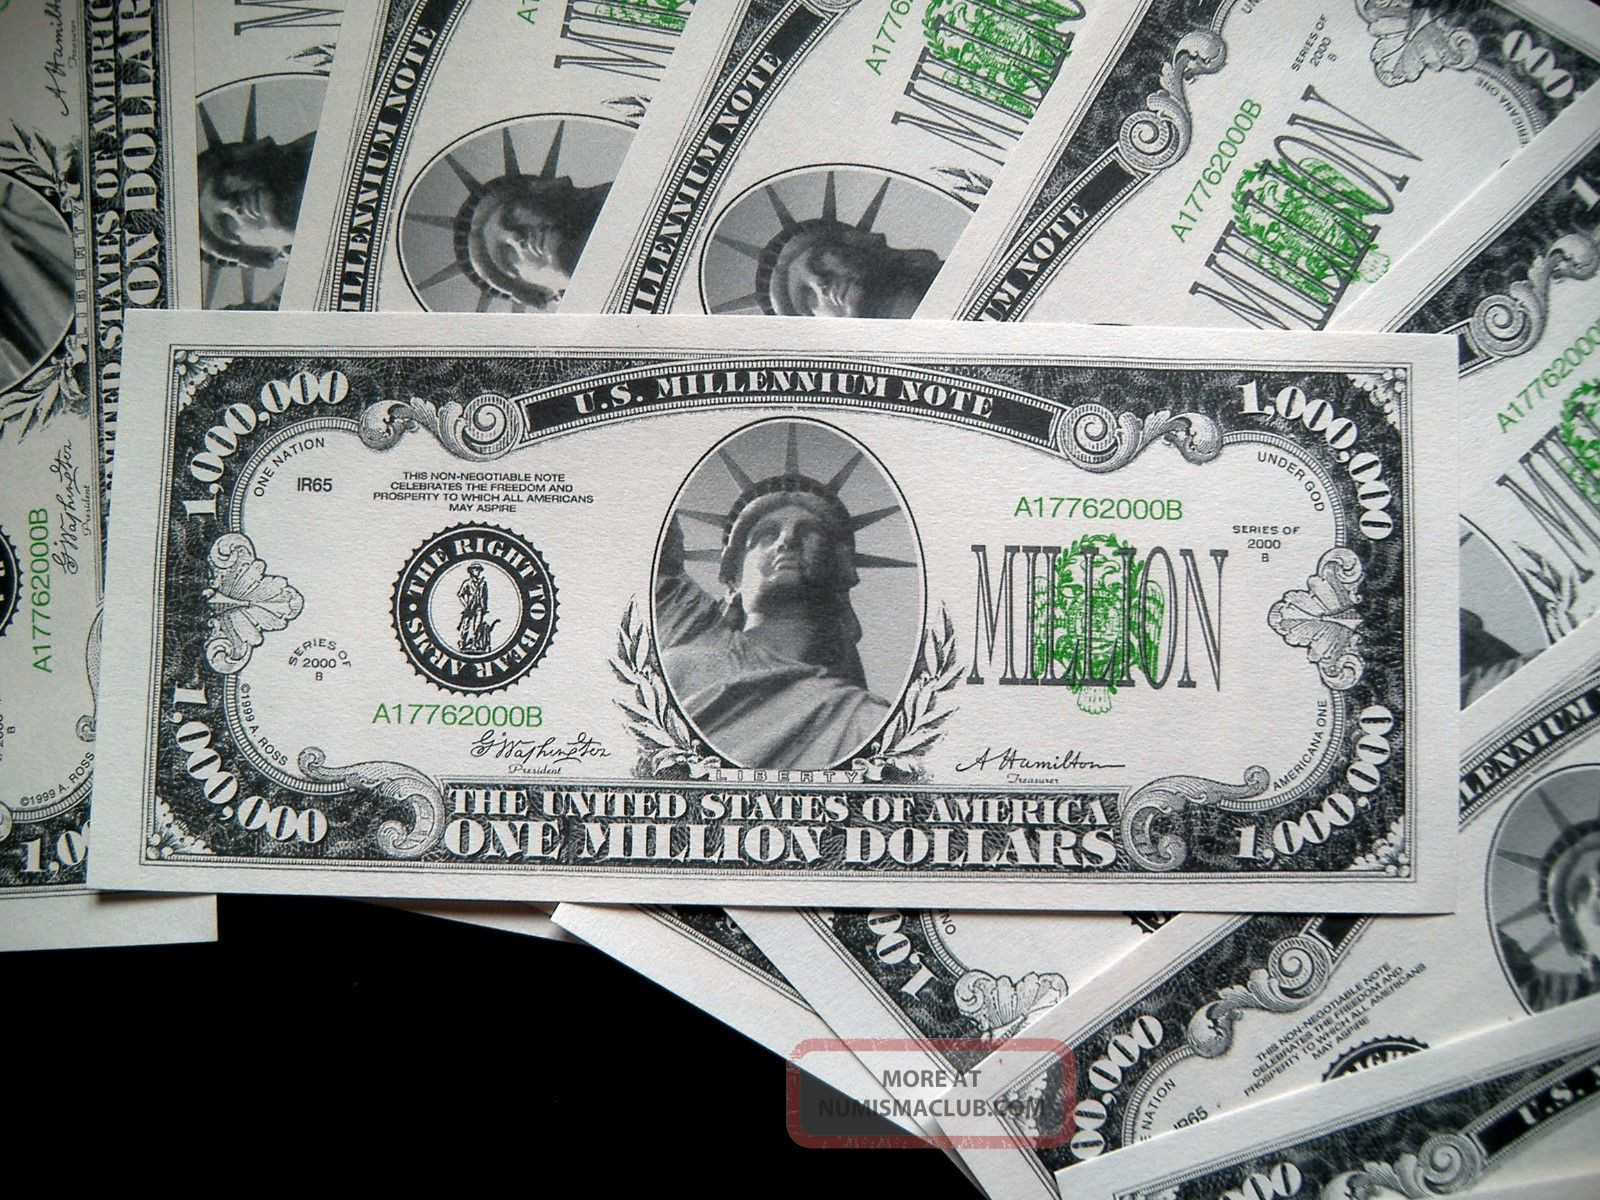 10 - One Million Dollar Bills - 5 Bill Pack - Fake Play Novelty Money - Million Paper Money: US photo